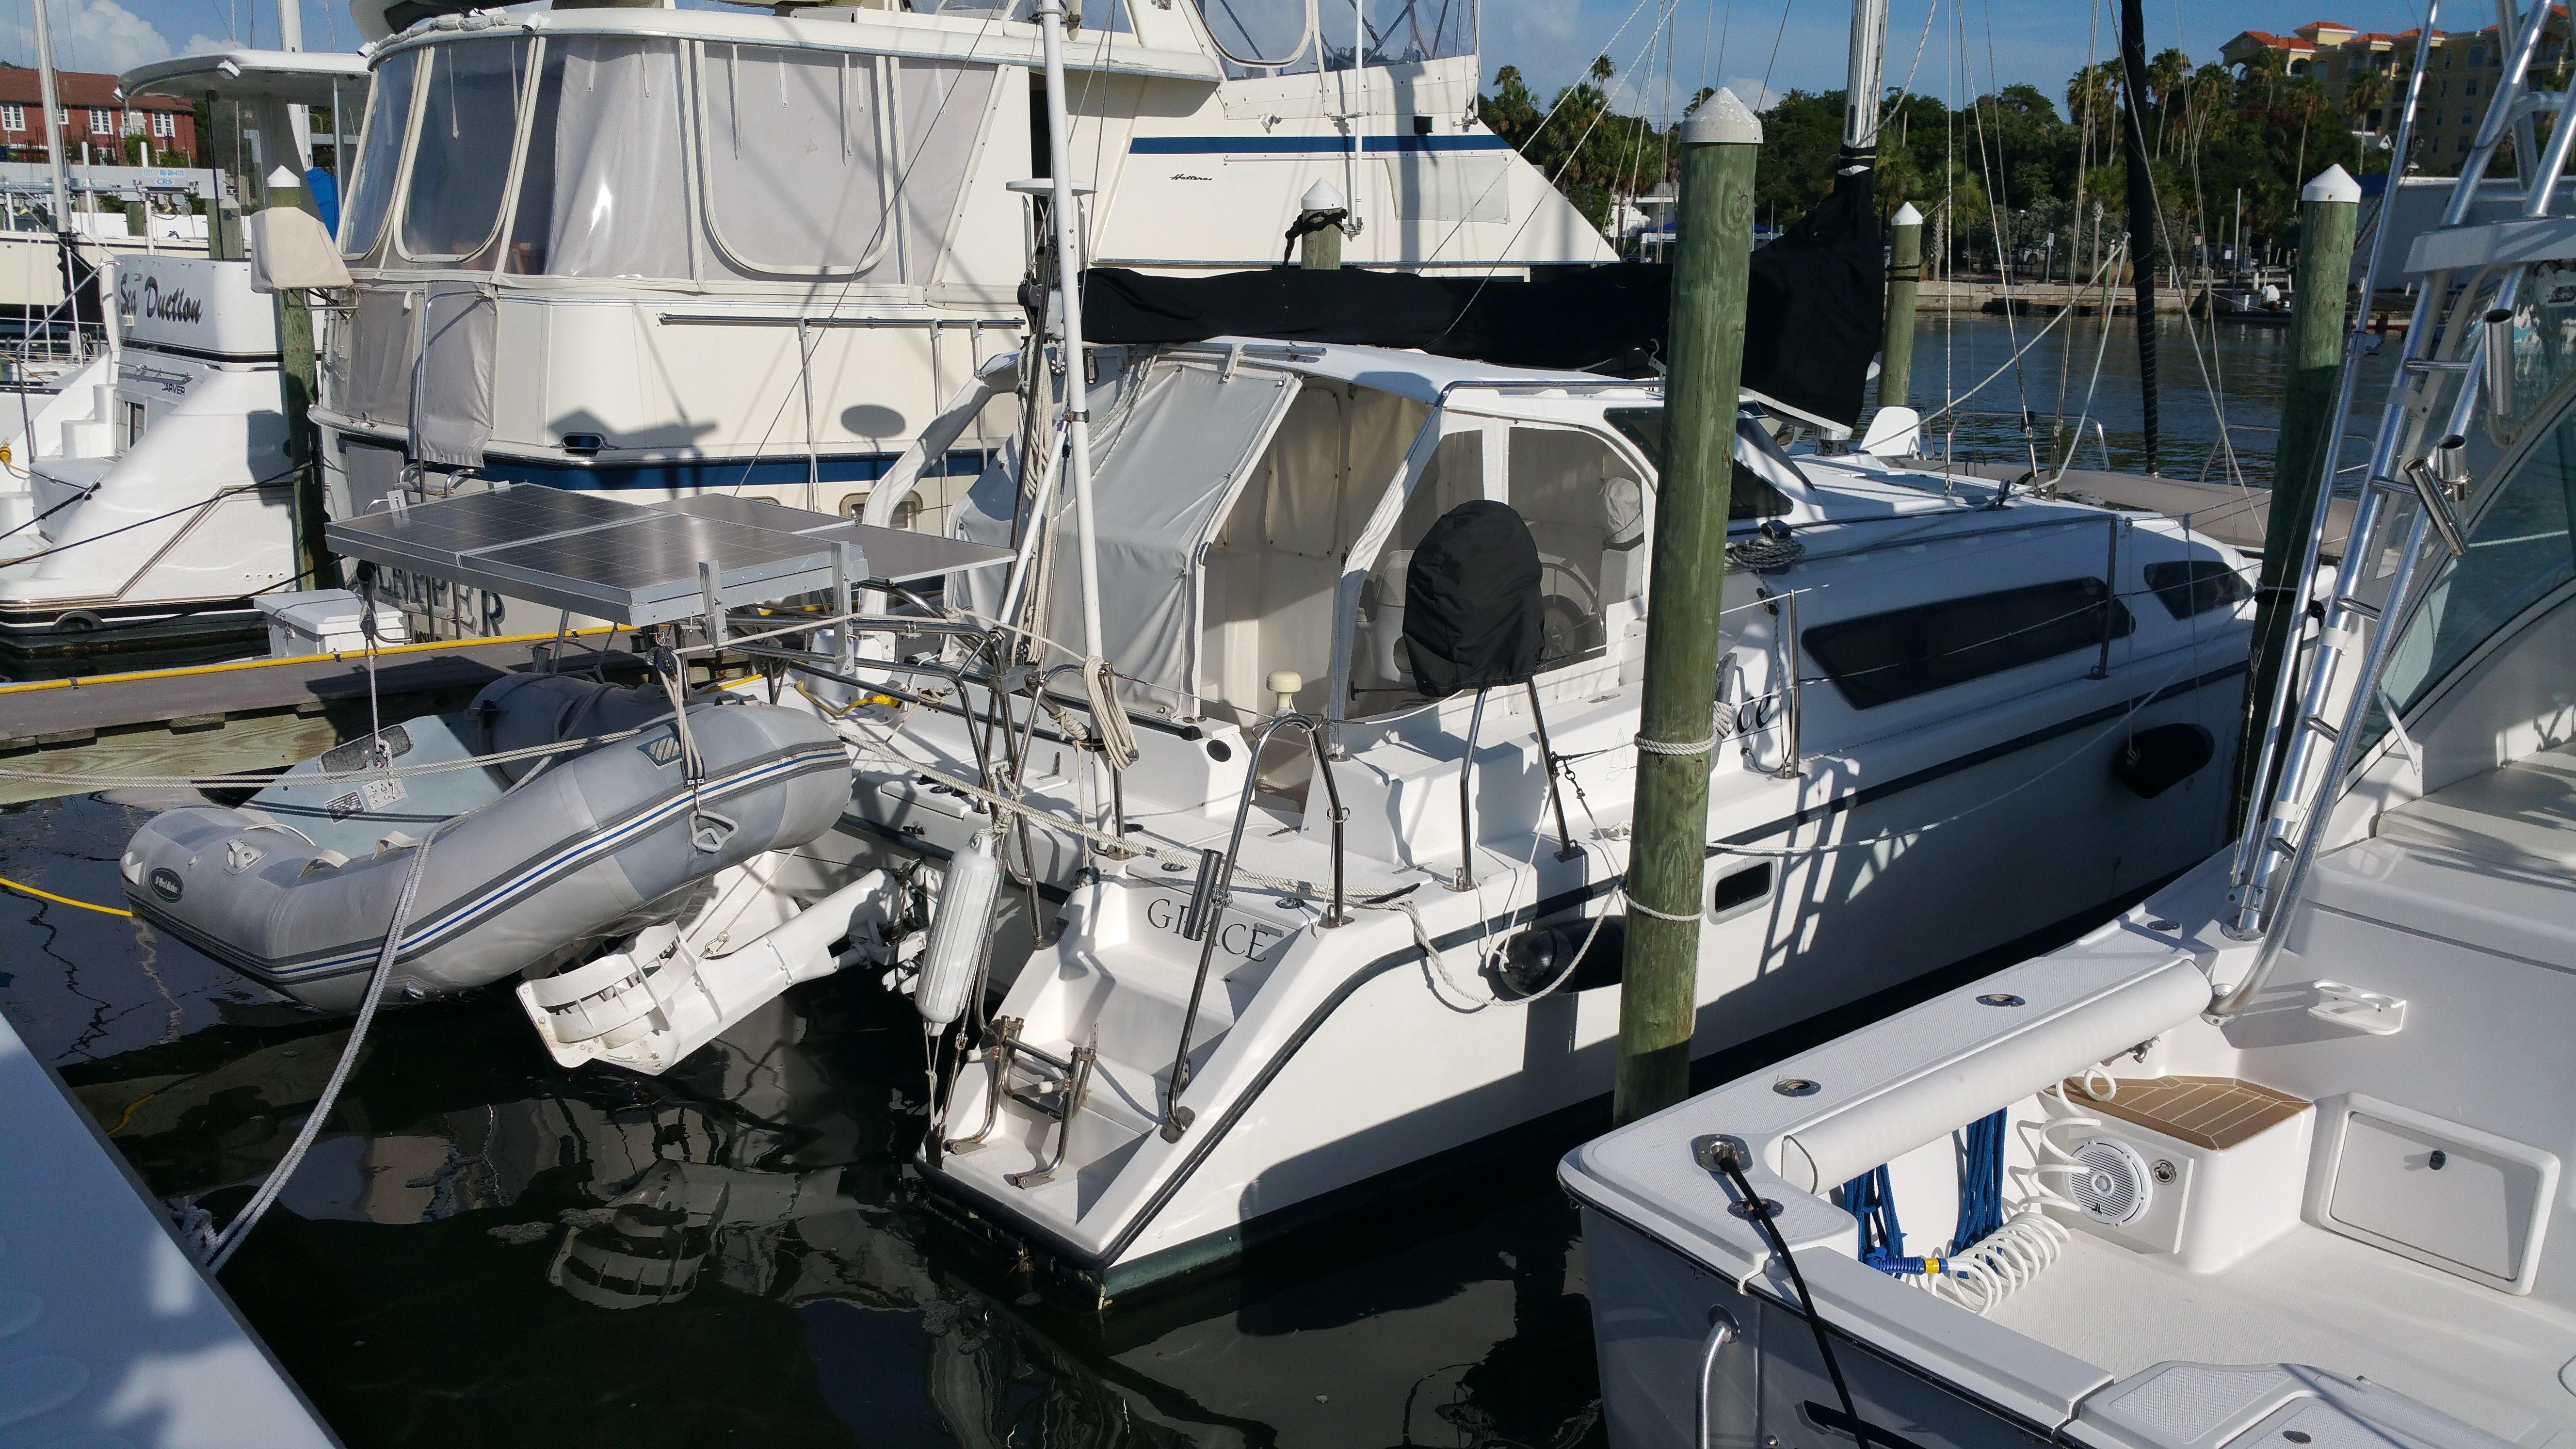 34' Performance Cruising 2002 Gemini 105Mc